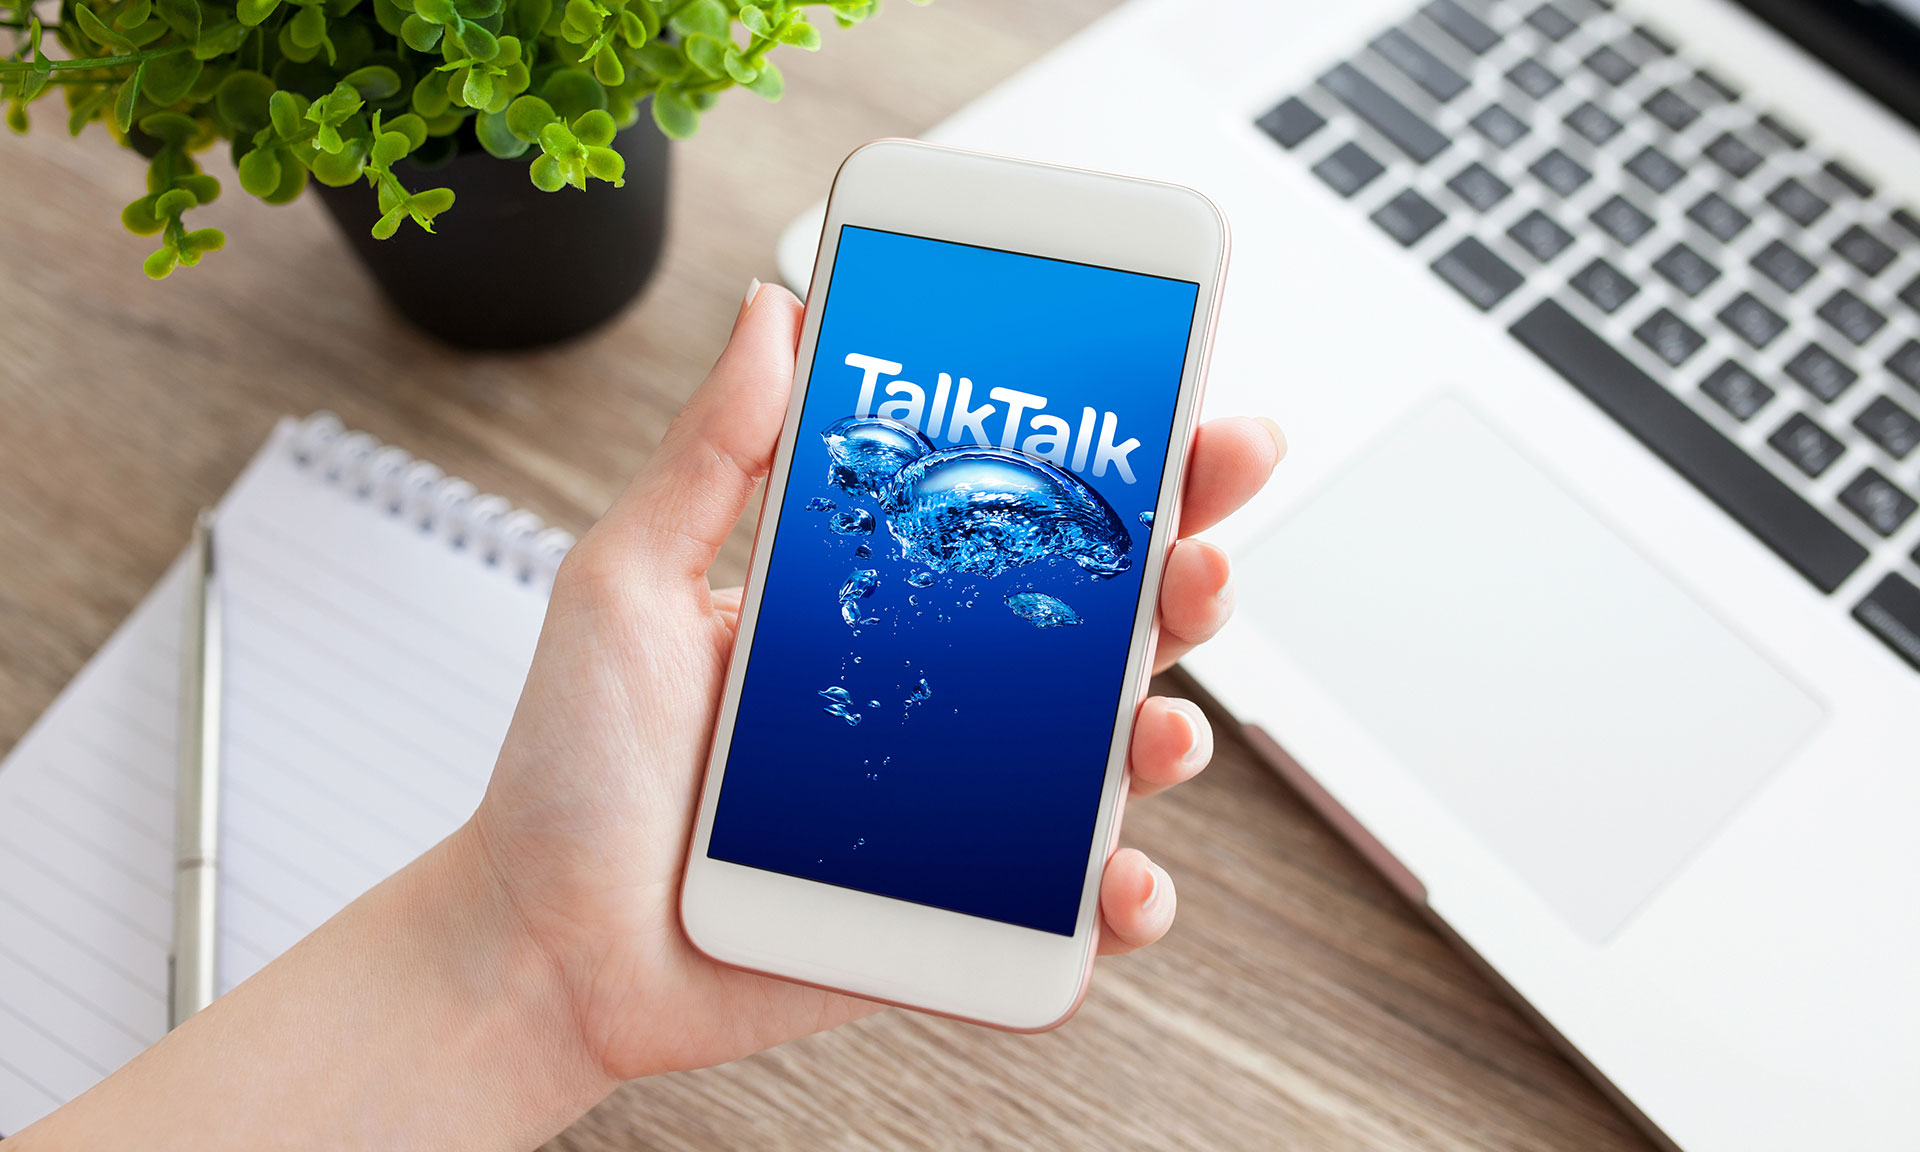 Talk Talk announces a maintained final dividend of 1.50p total 2020 dividend of 2.50p